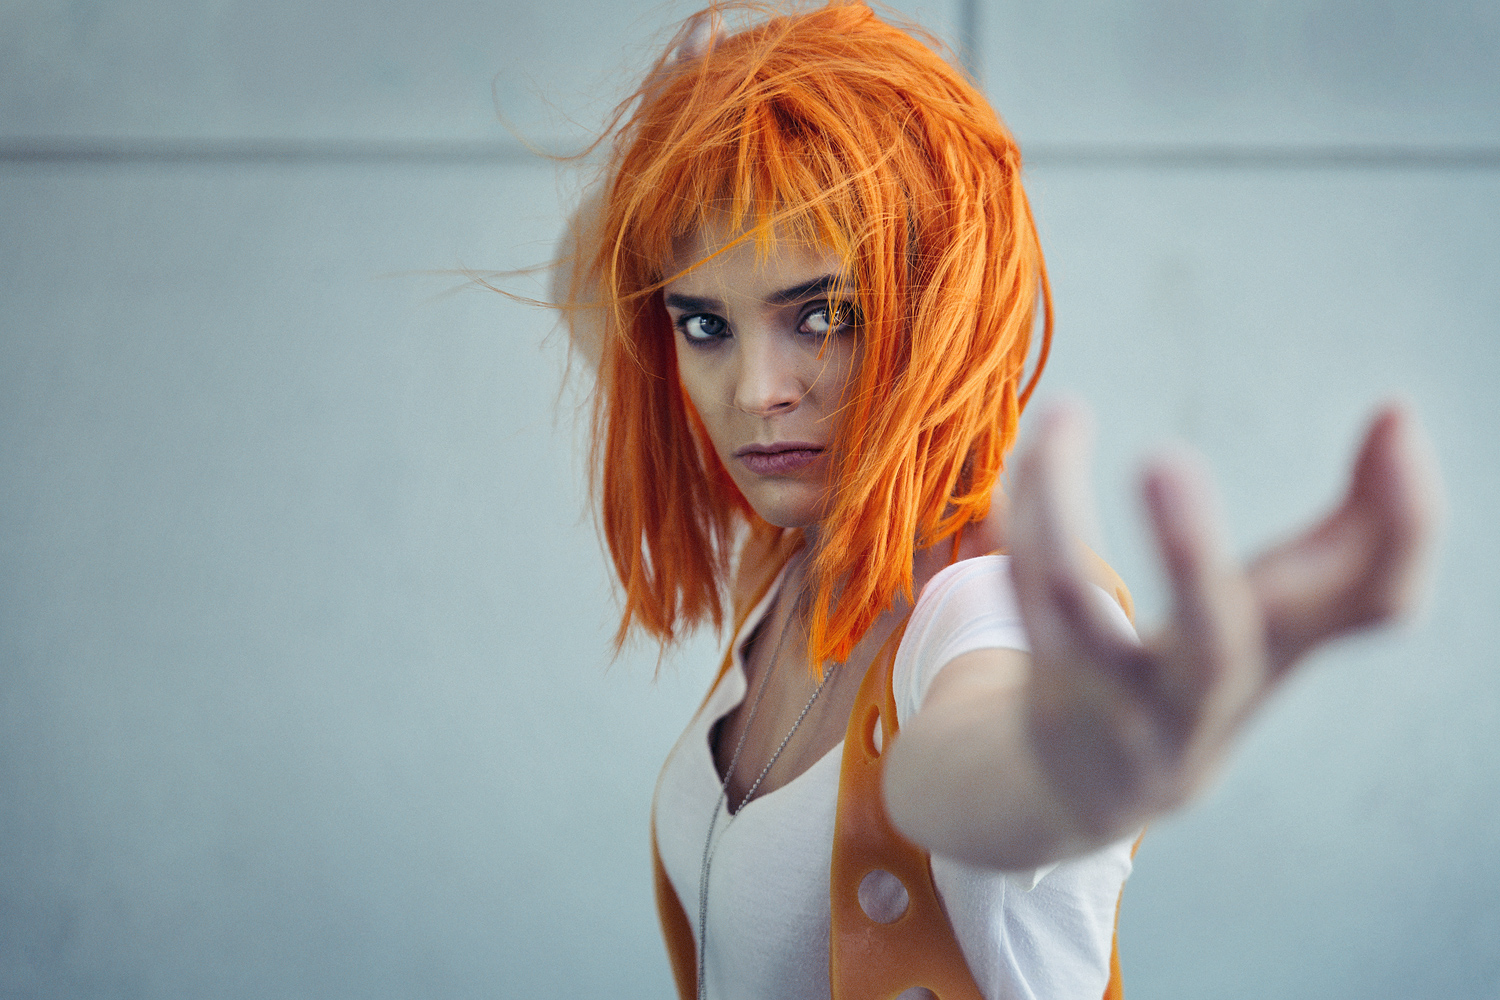 Lacey Berggren as Leeloo of The Fifth Element